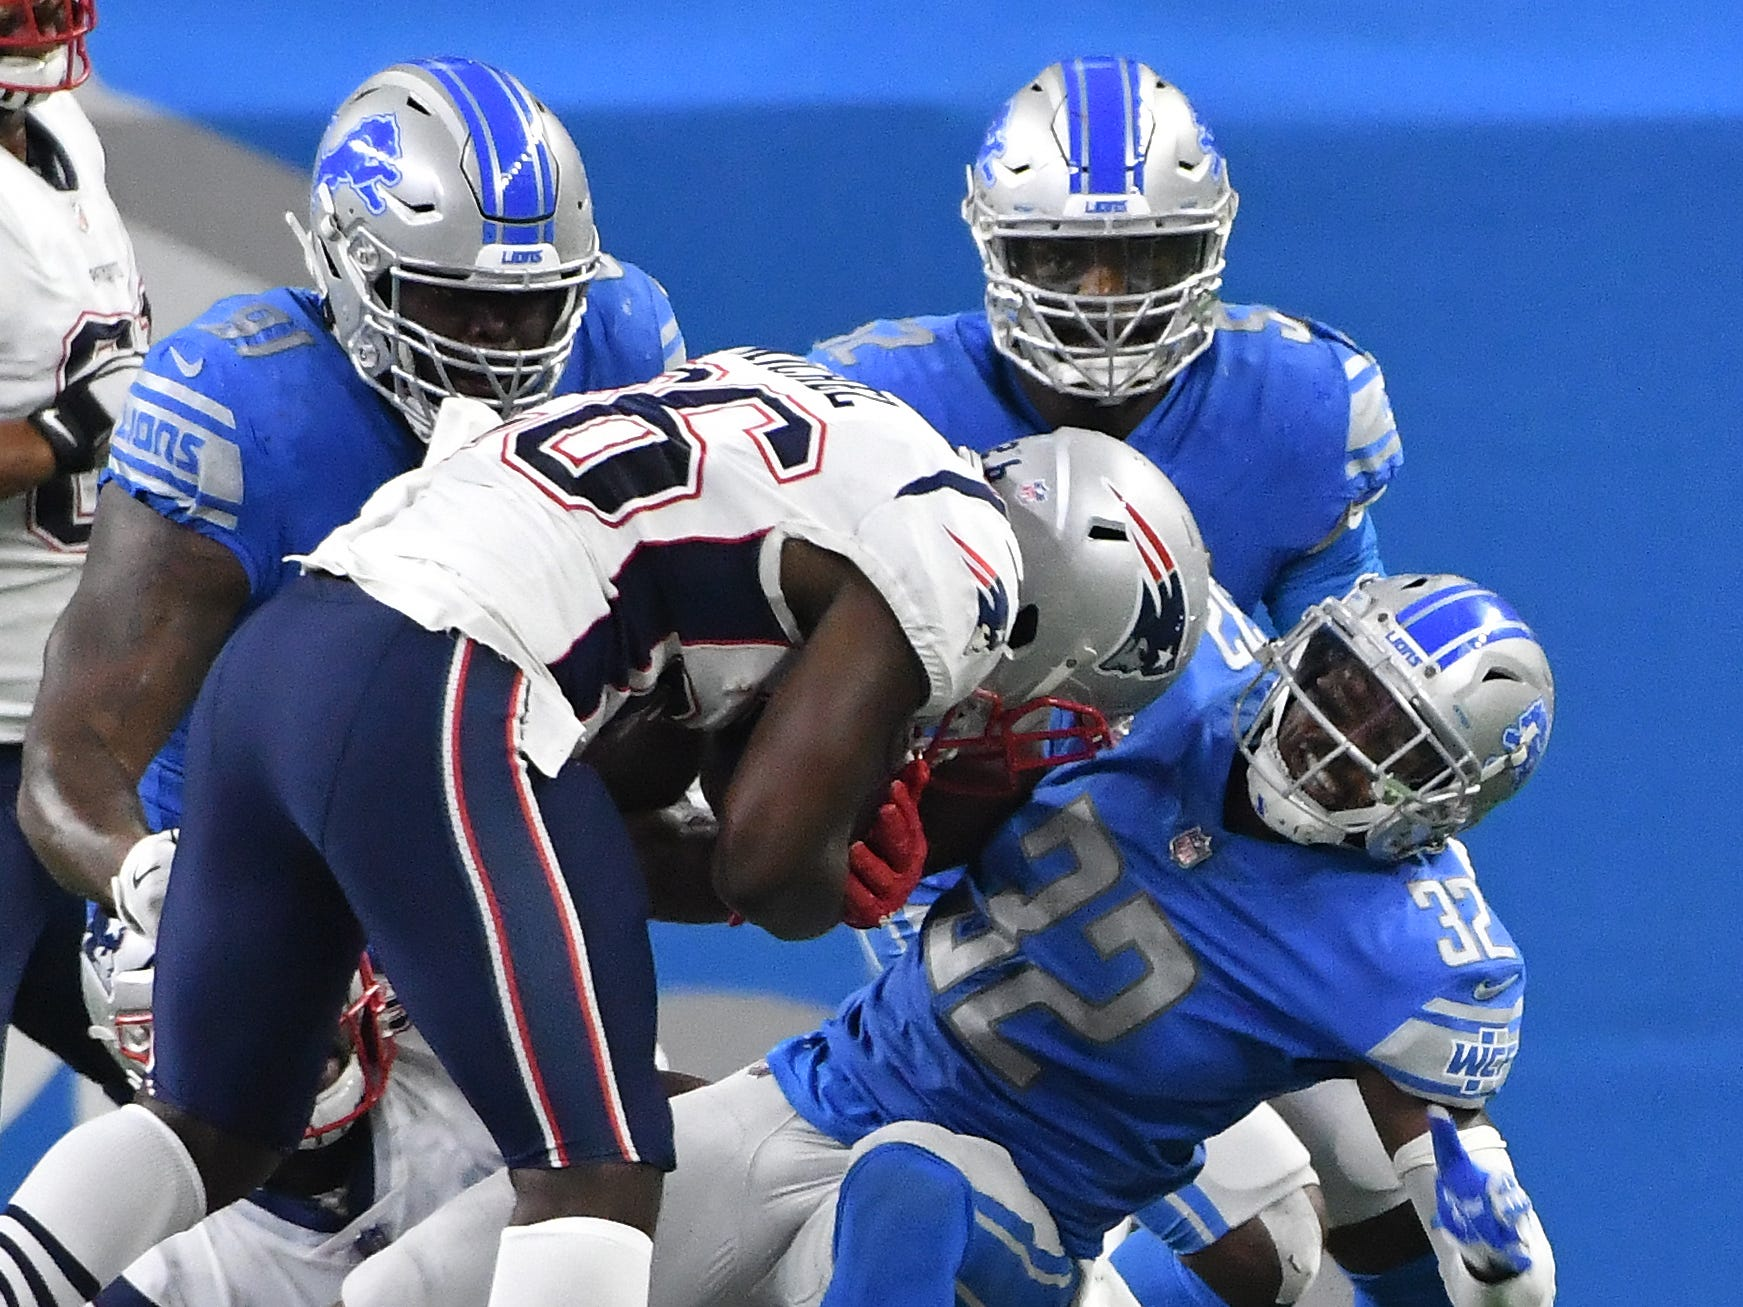 Lions' Tavon Wilson pulls and the defense stop Patriots' Sony Michel from making a first down on 3rd and one in the second quarter.